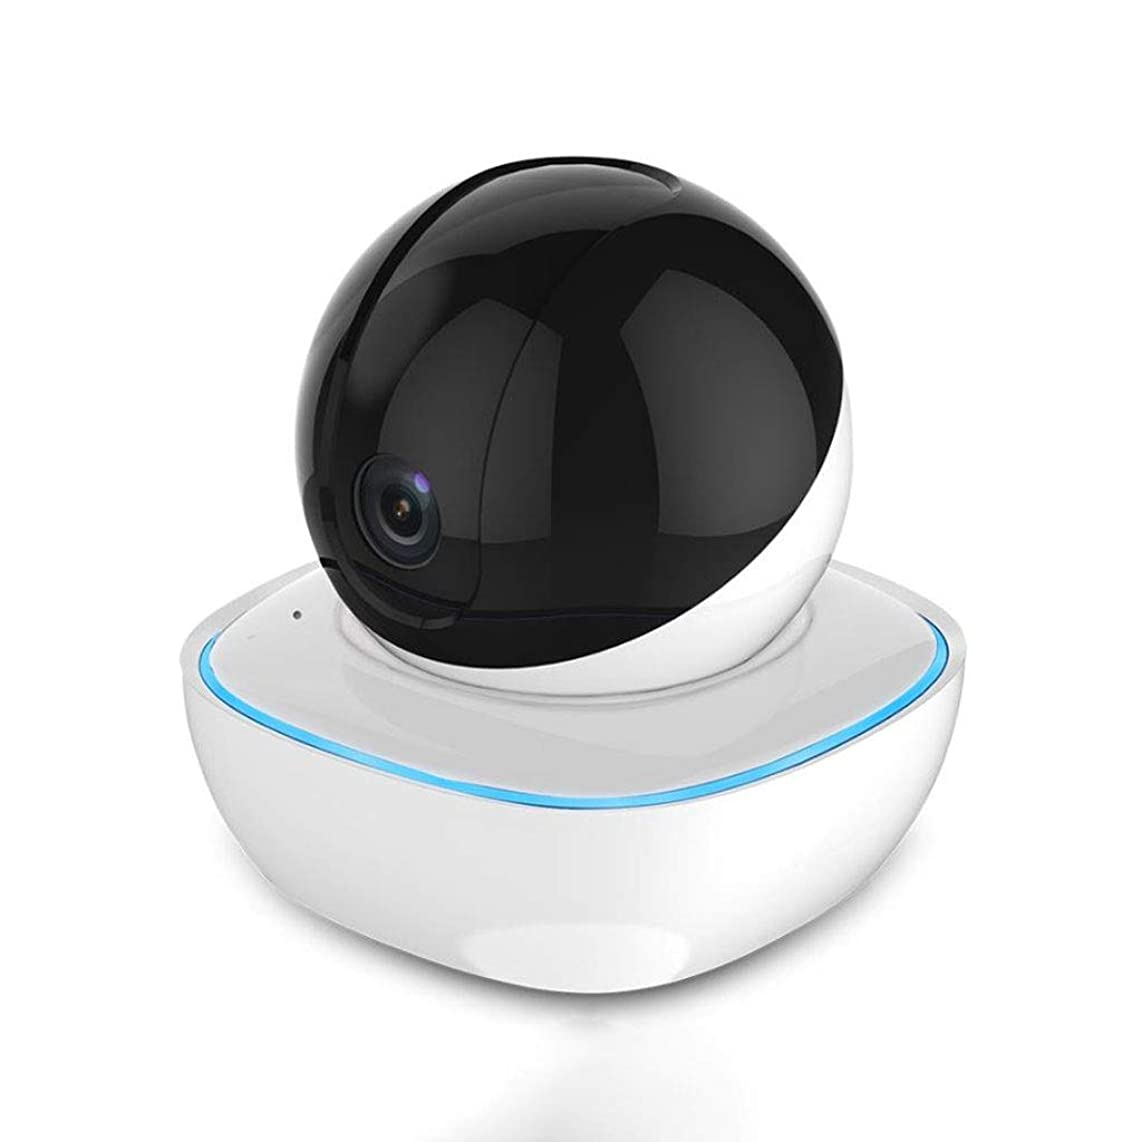 L-San 720p HD Camera Indoor Wireless IP Security Monitoring System with Remote Monitor Two-Way Voice Night Vision Suitable for Home Office Baby Pet Monitor